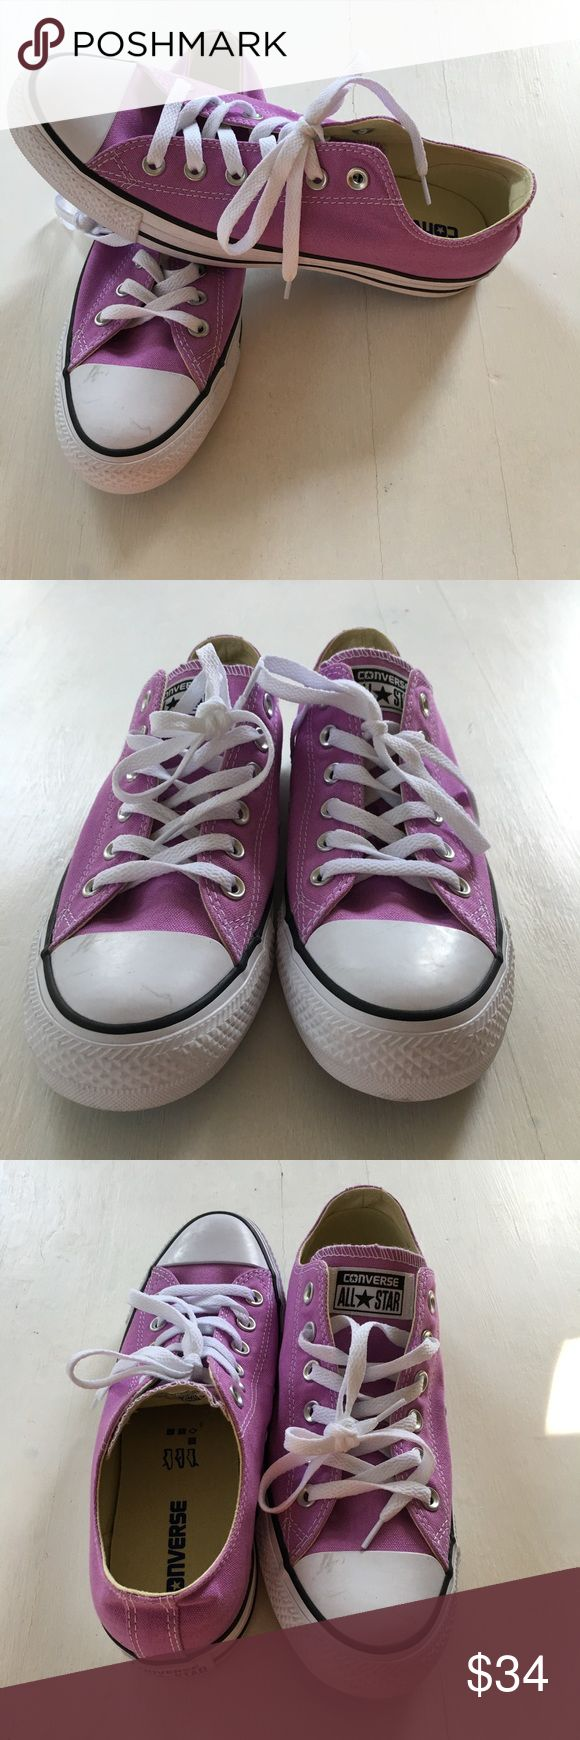 Converse New Chuck Taylor All Star Color Polka Dots High Canvas Wave Point Sneakers